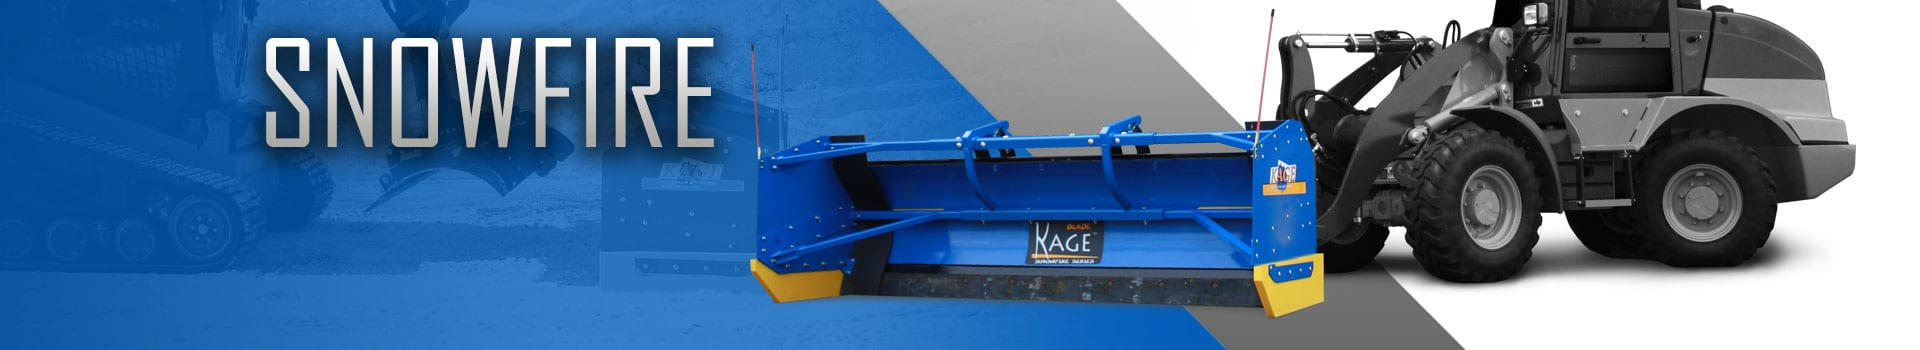 SNOWFIRE Skid Steer Snow Plow by KAGE® Innovation